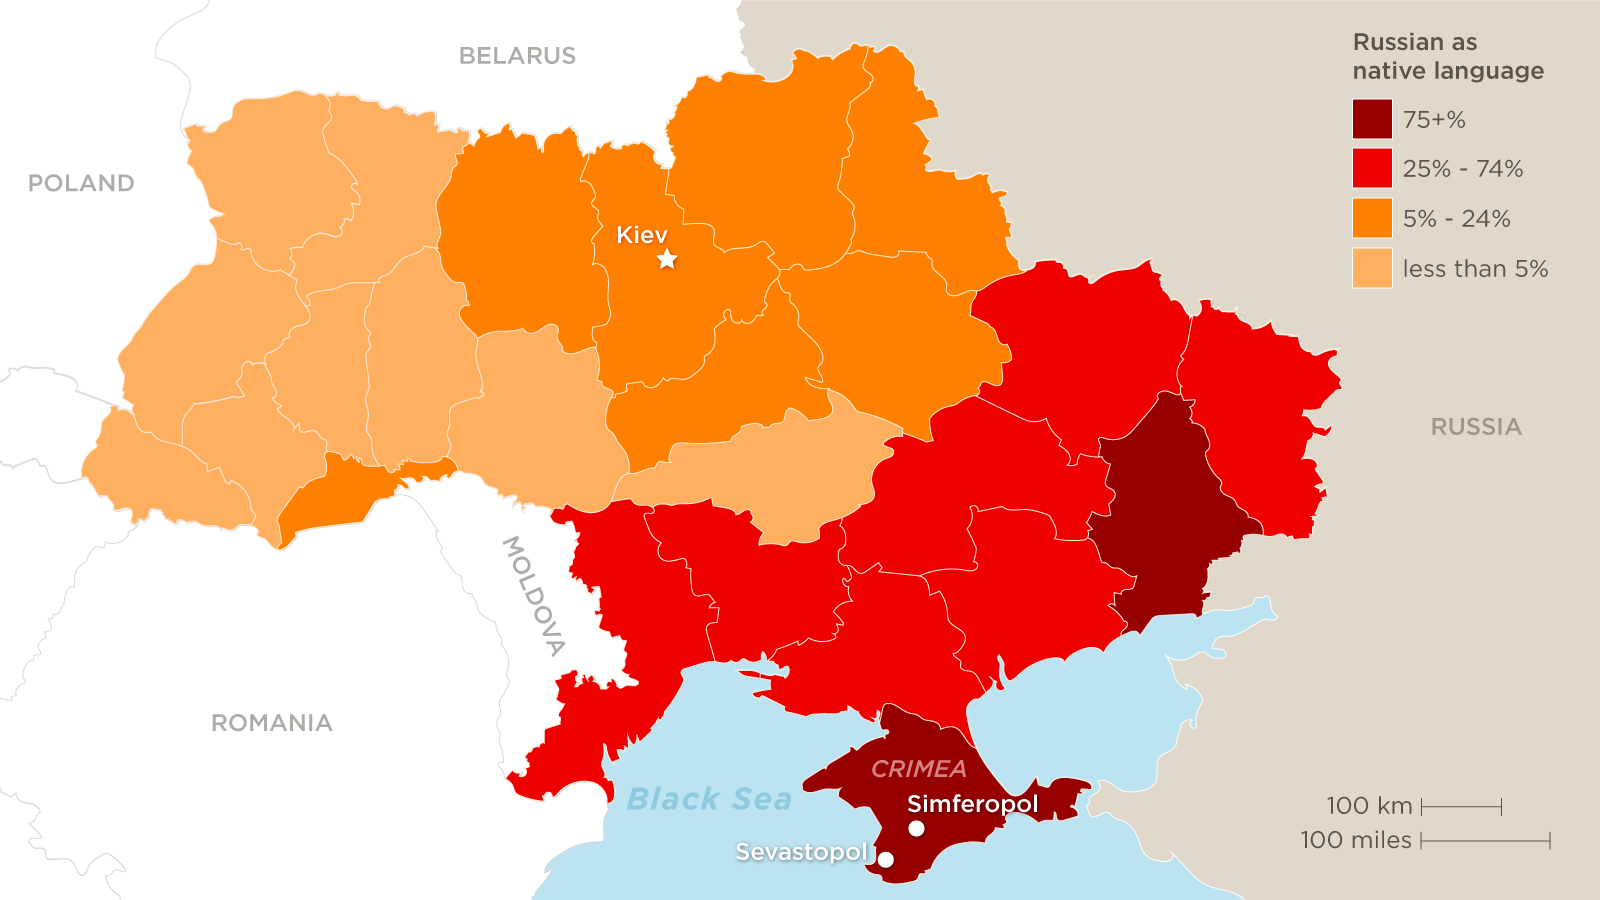 ukraine_map_region_language.jpg